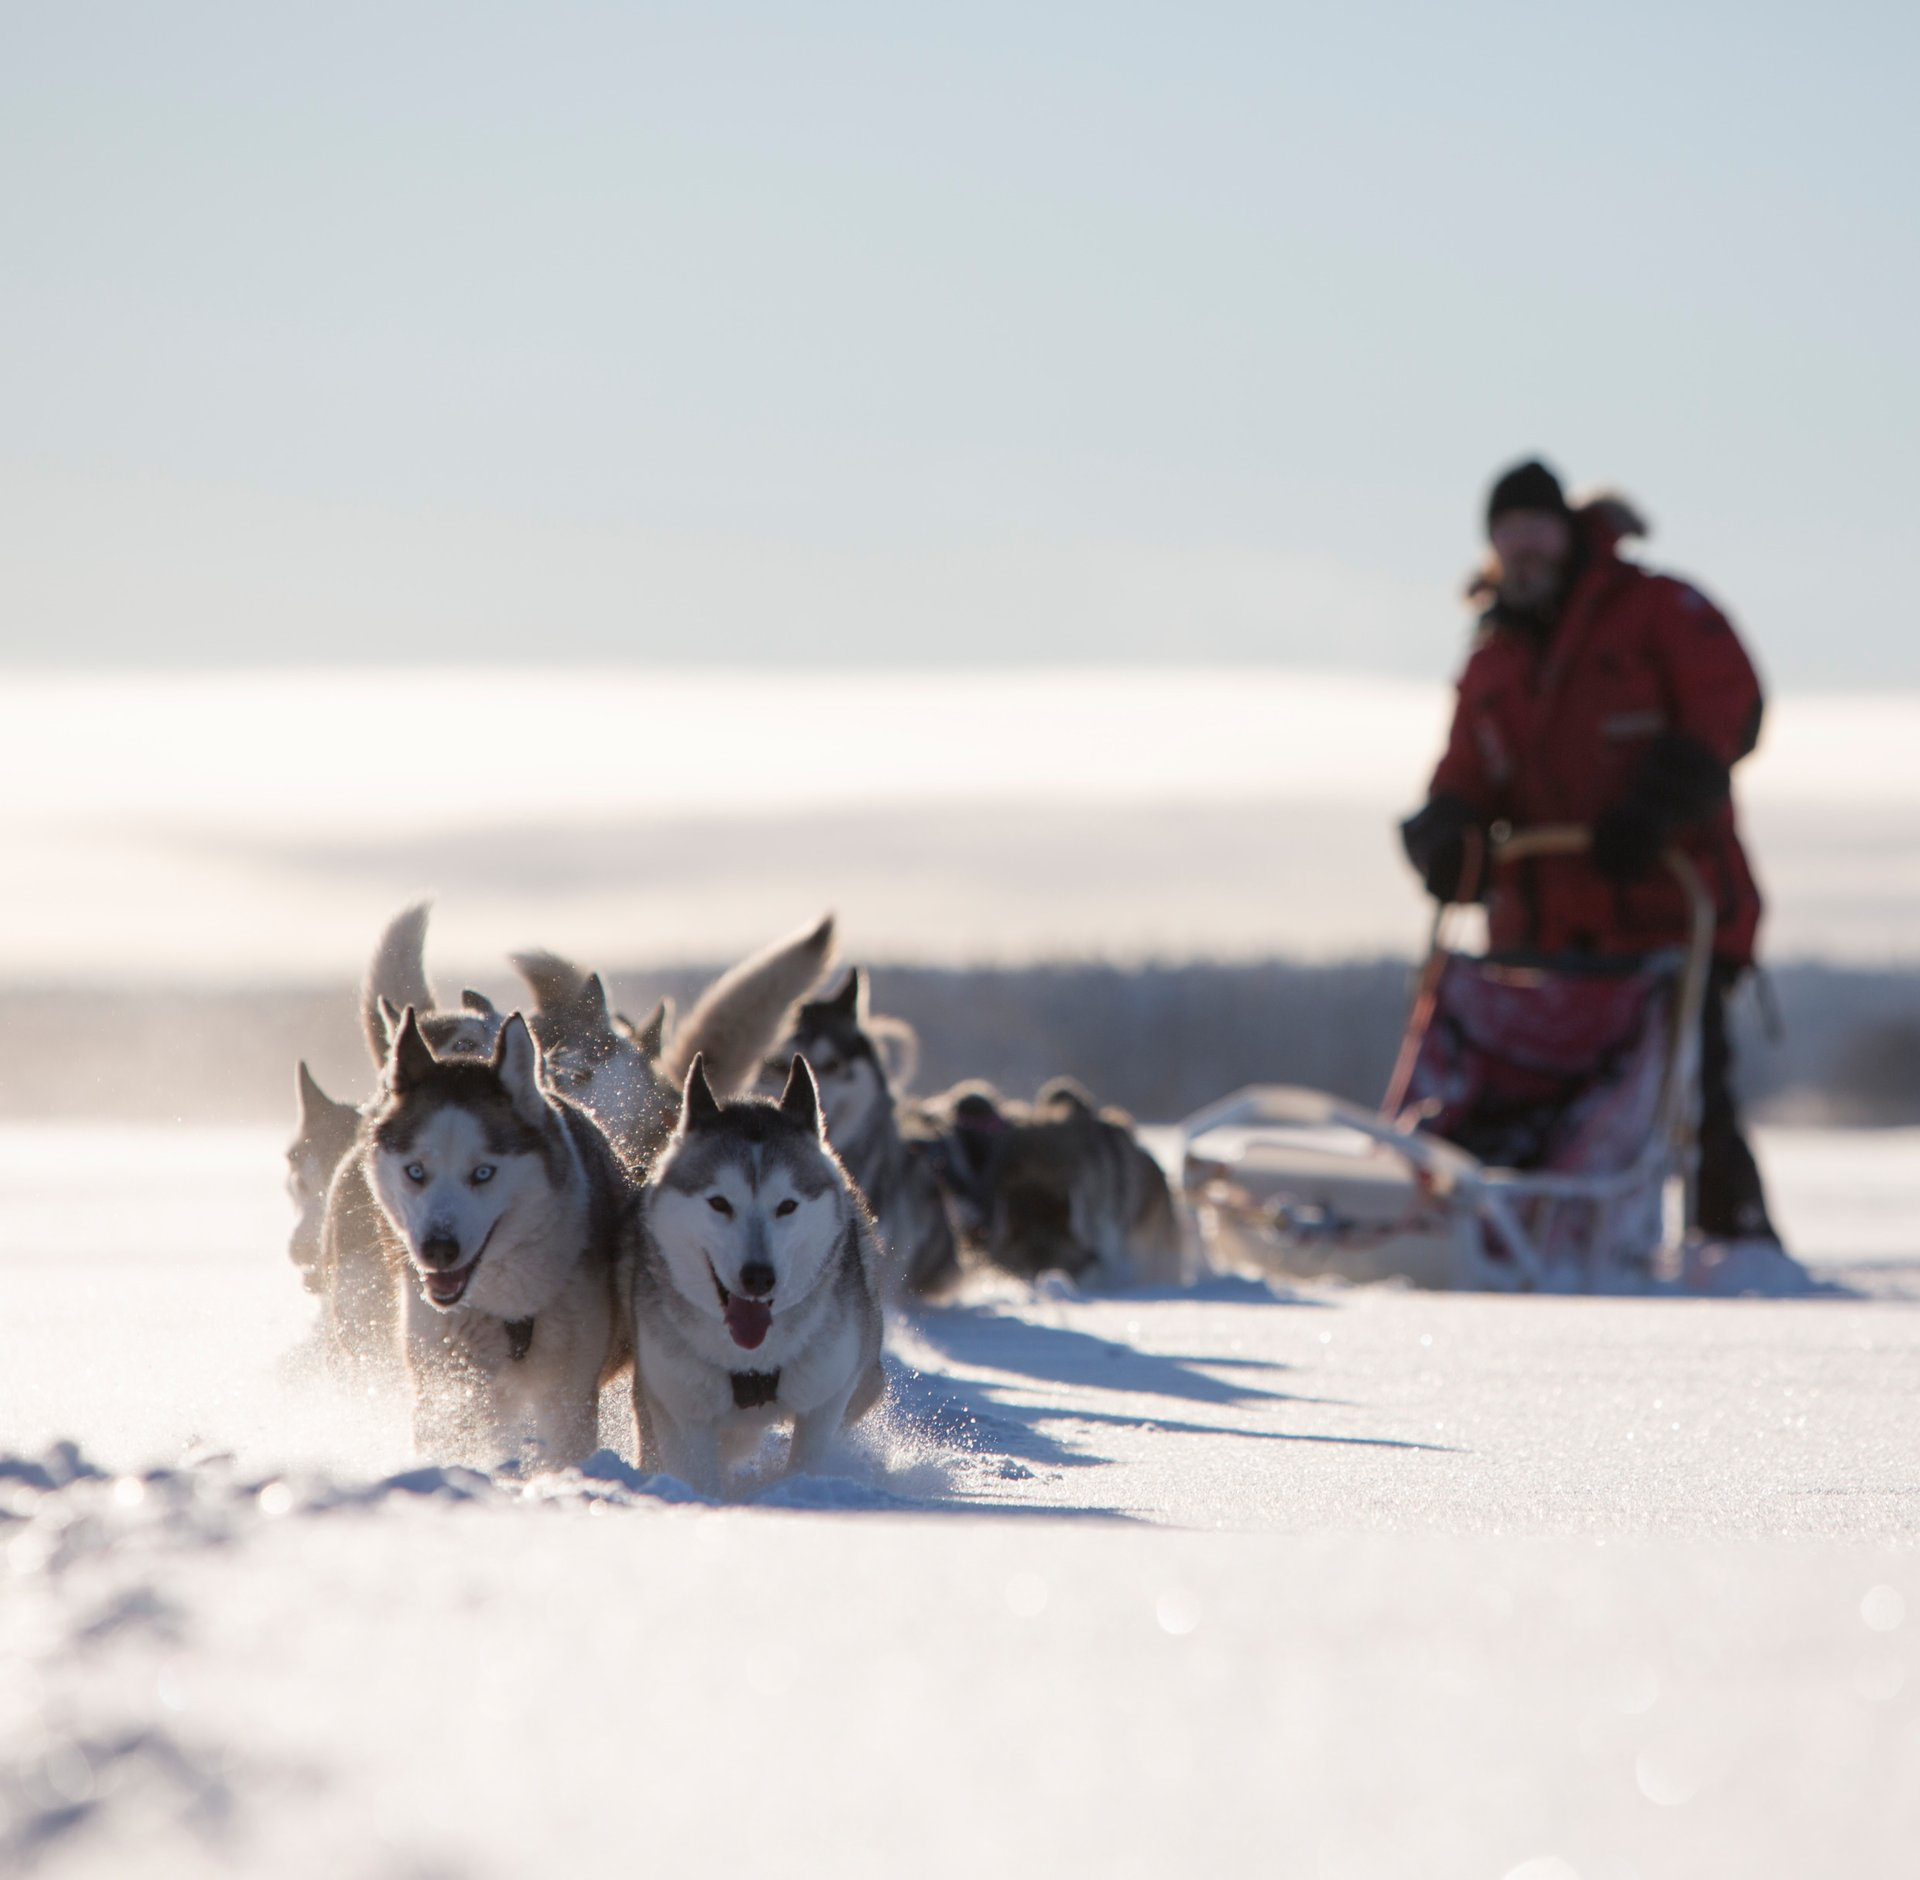 Dogsledding in Swedish Lapland in Sweden 2020 - Best Time